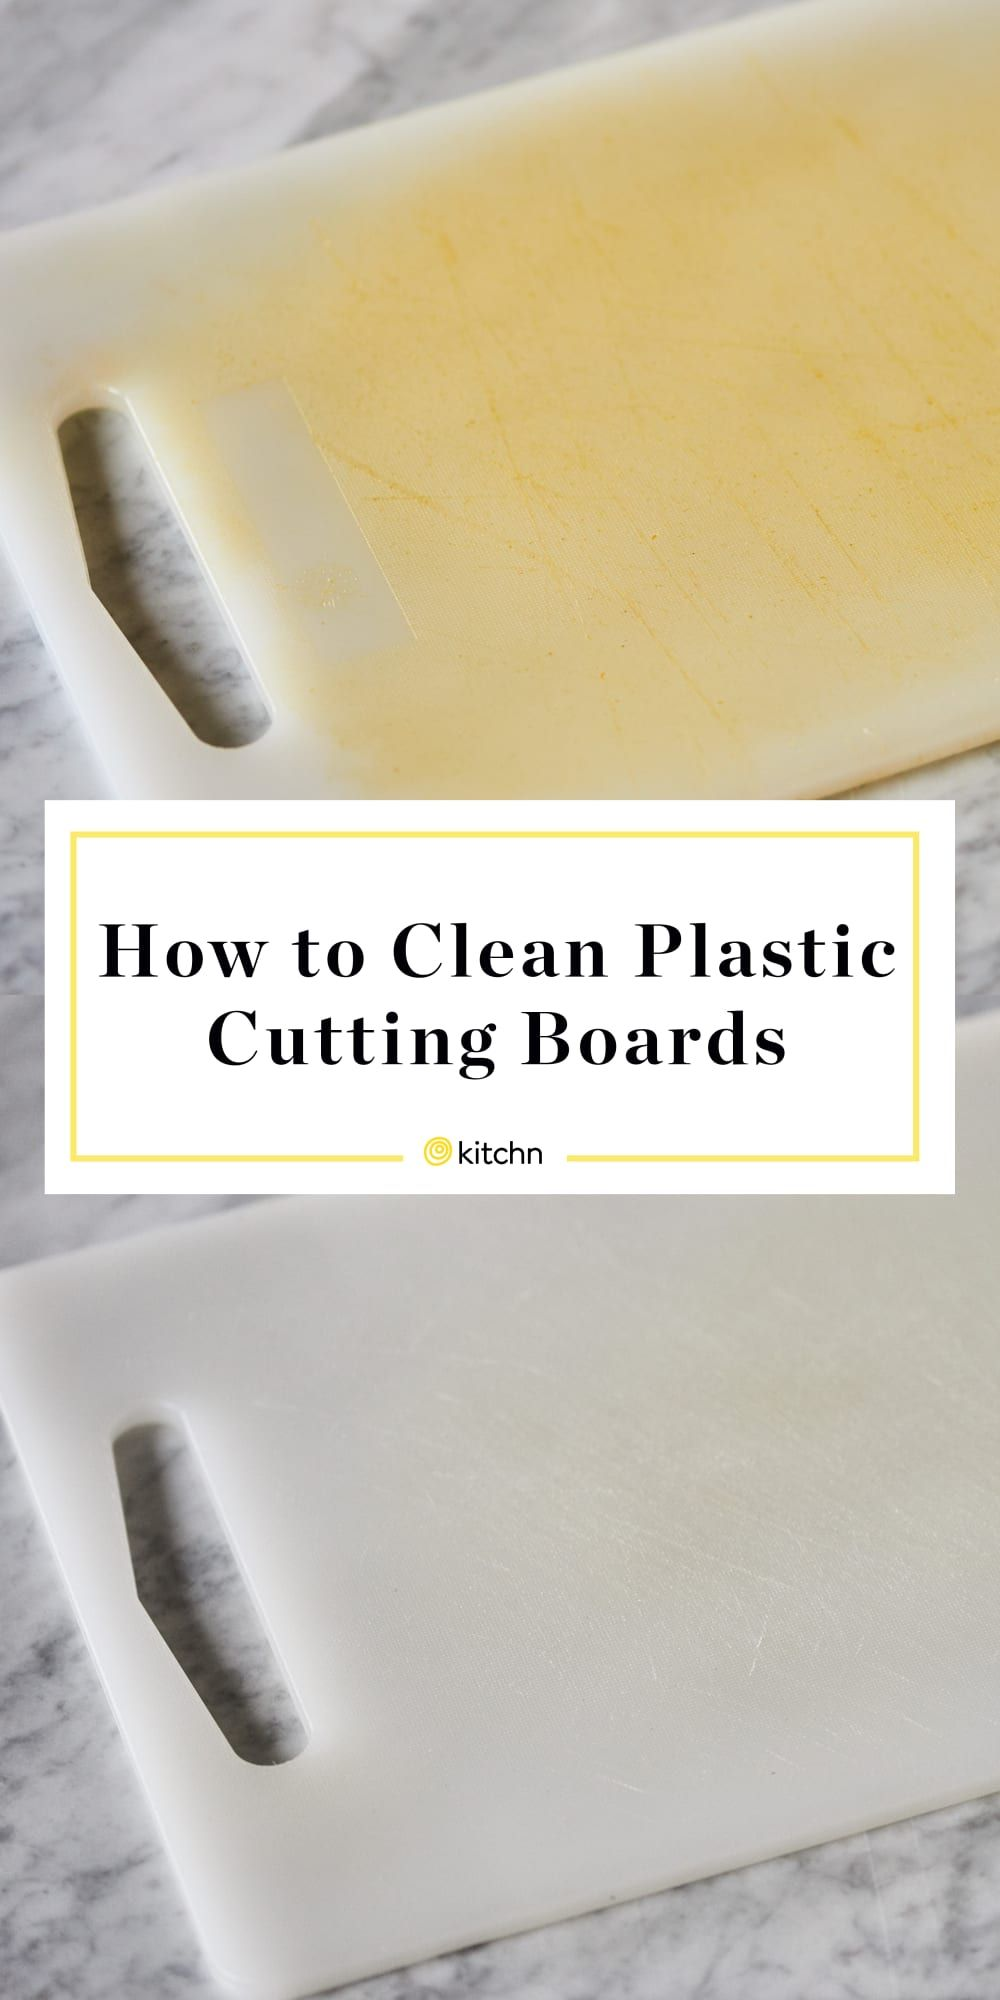 The Best Ways to Clean and Disinfect Plastic Cutting Boards (Without Bleach) #cookingandhouseholdhints